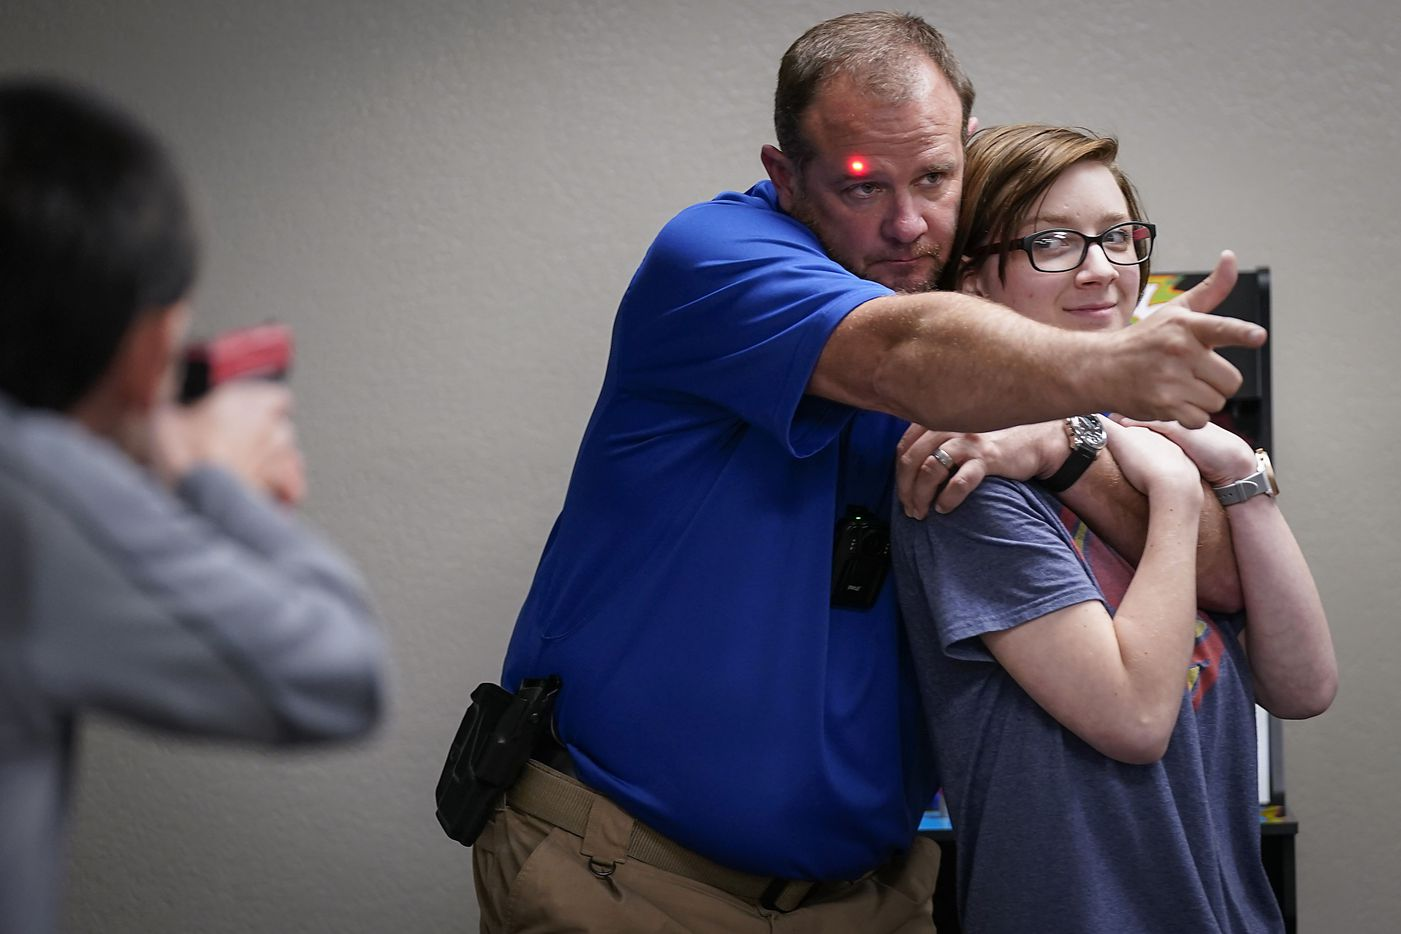 Instructor David Riggall portrays a hostage taker as Shelby Fox portrays the hostage during a Sheepdog Defense Group armed security programs church safety training at Cornerstone Community Church on Sunday, Feb. 2, 2020 in Springtown, Texas.